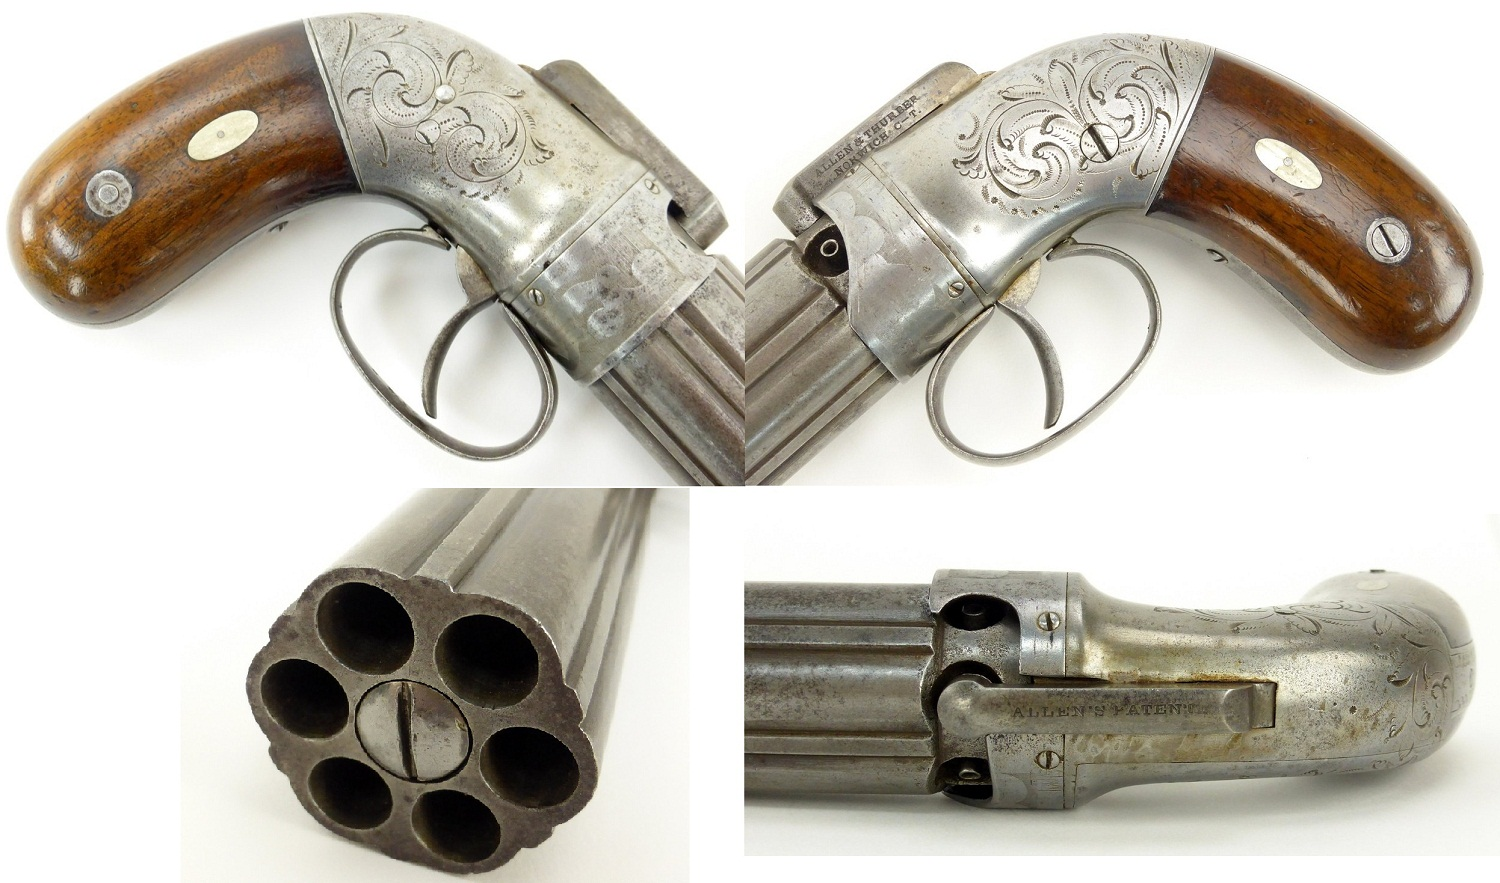 Pepperbox Allen & Thurber Norwich dragoon